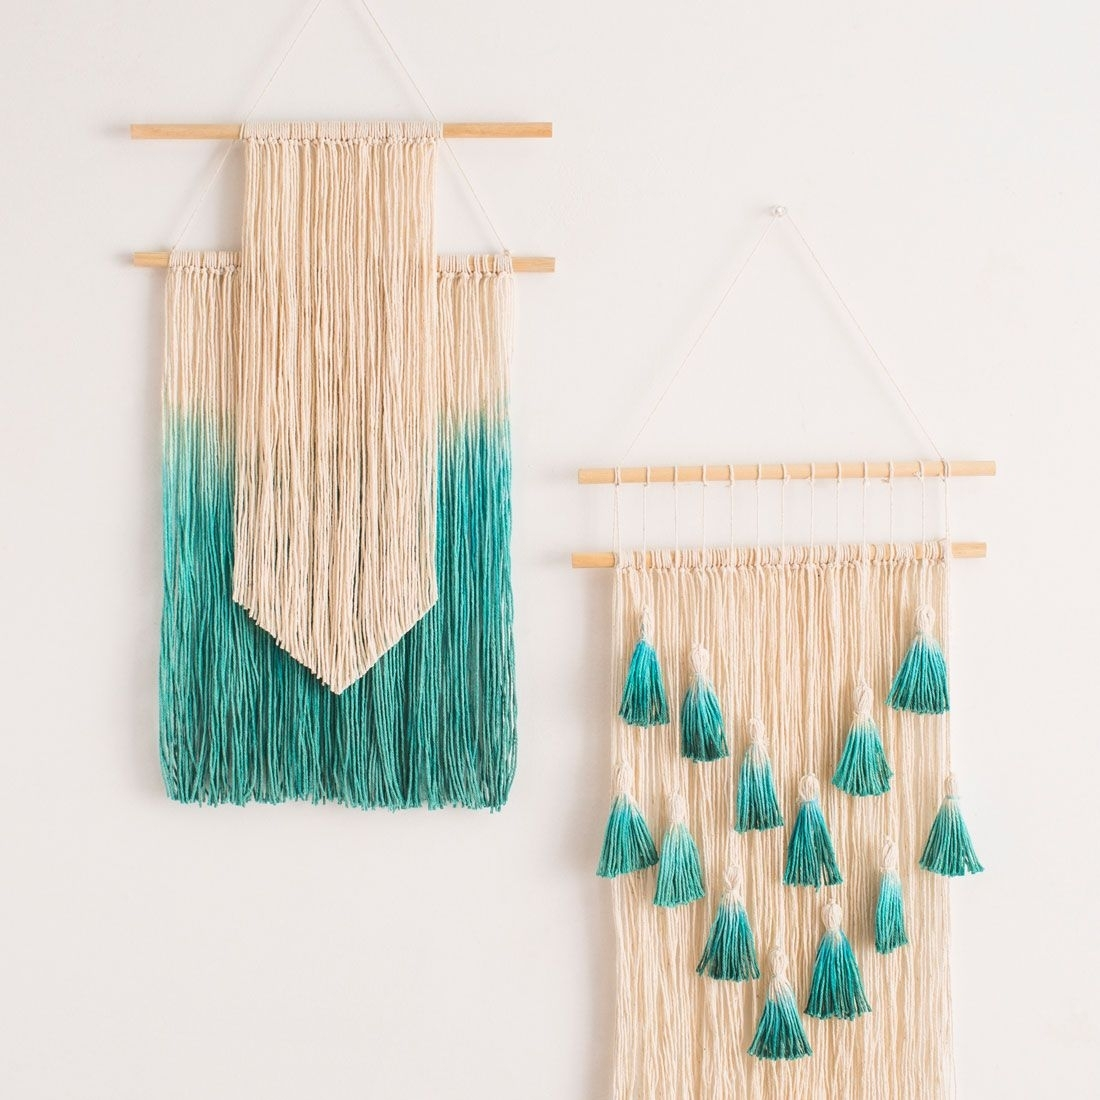 9 Diys For Your College Apartment | Diy Wall Art, Diy Wall And Throughout Best And Newest Woven Fabric Wall Art (View 9 of 15)